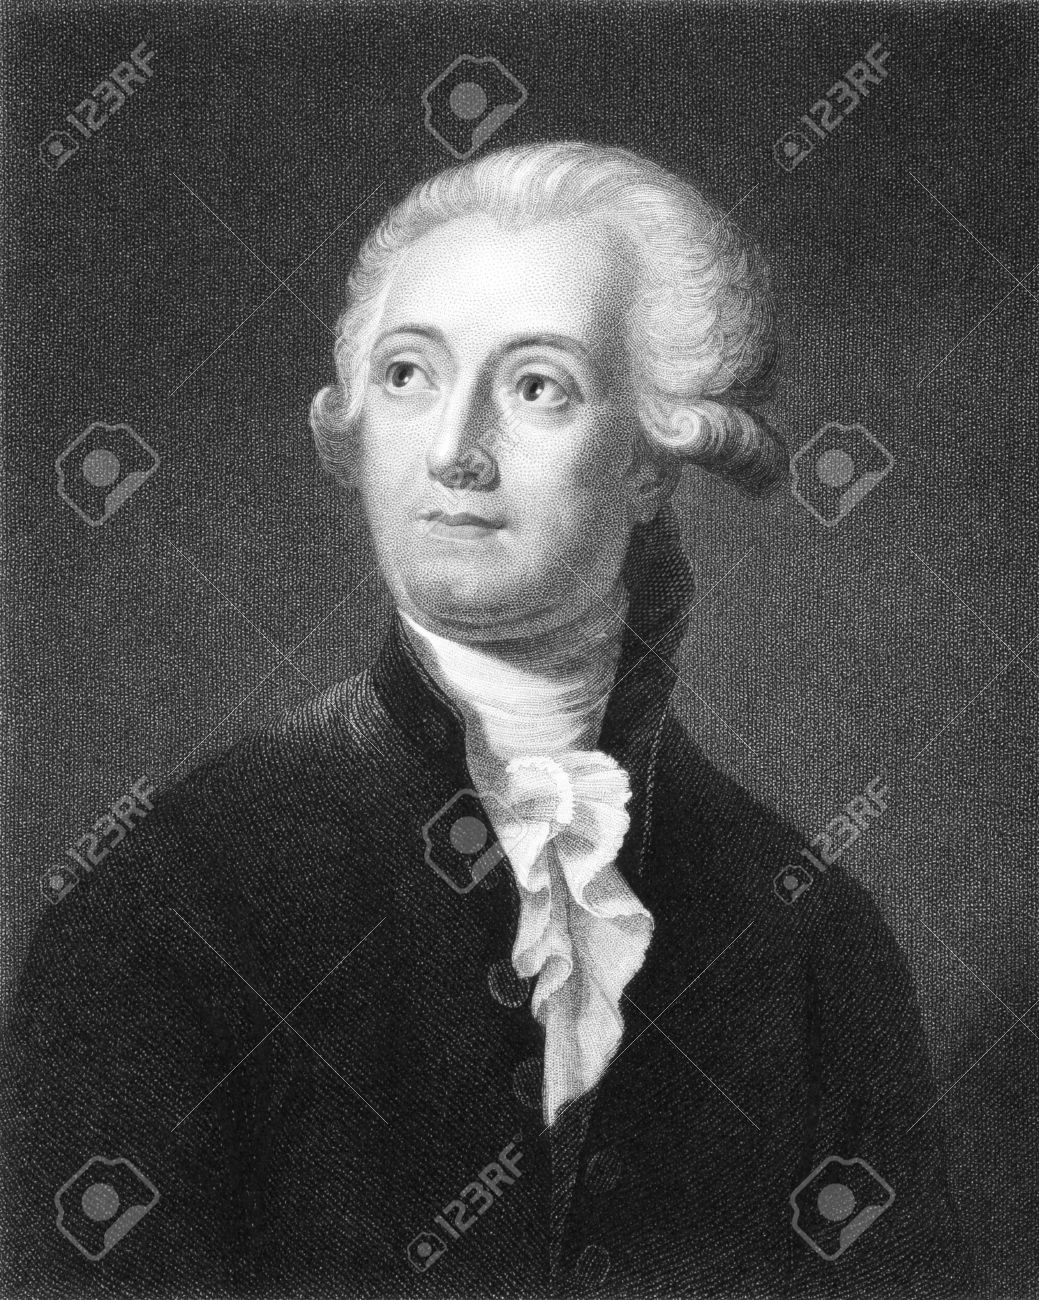 Antoine Lavoisier (1743-1794) on engraving from the 1800s. The father of